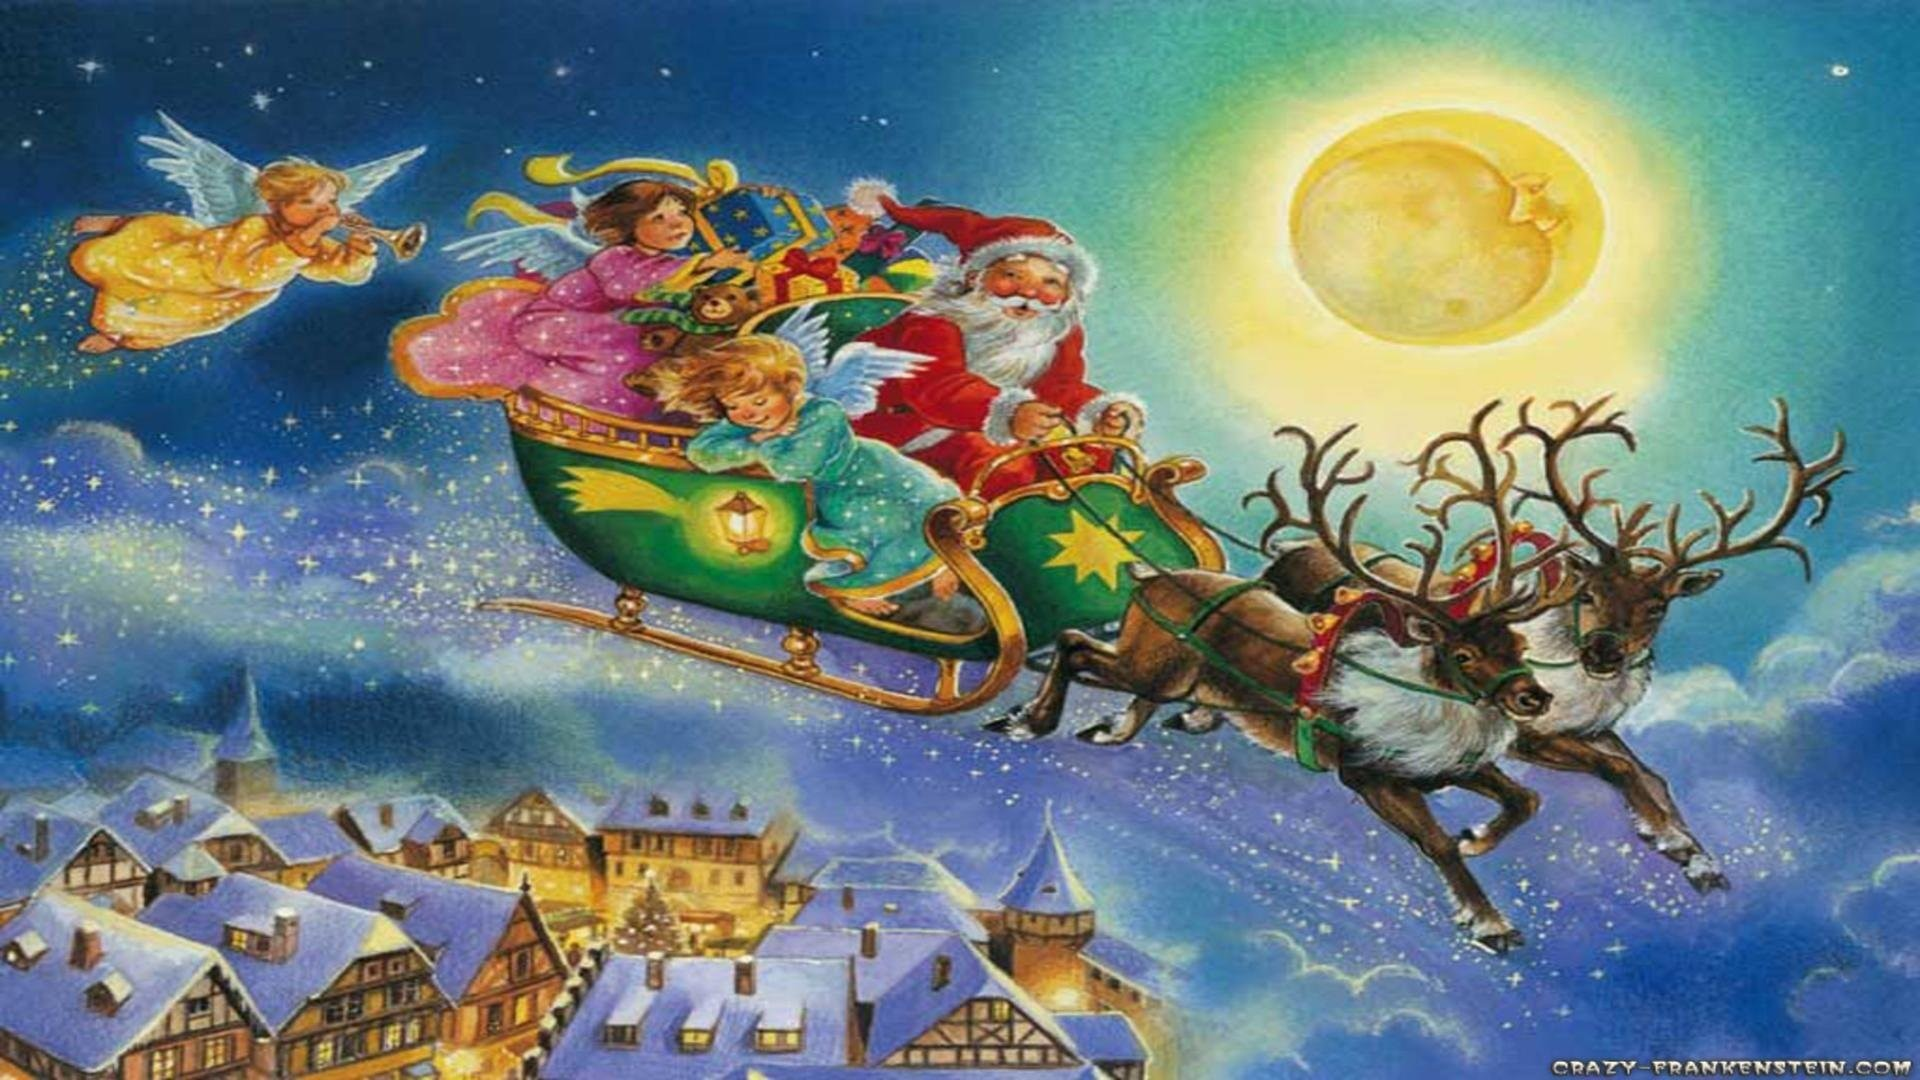 Walt Disney Christmas Wallpaper.Disney Christmas Wallpaper Desktop 57 Images